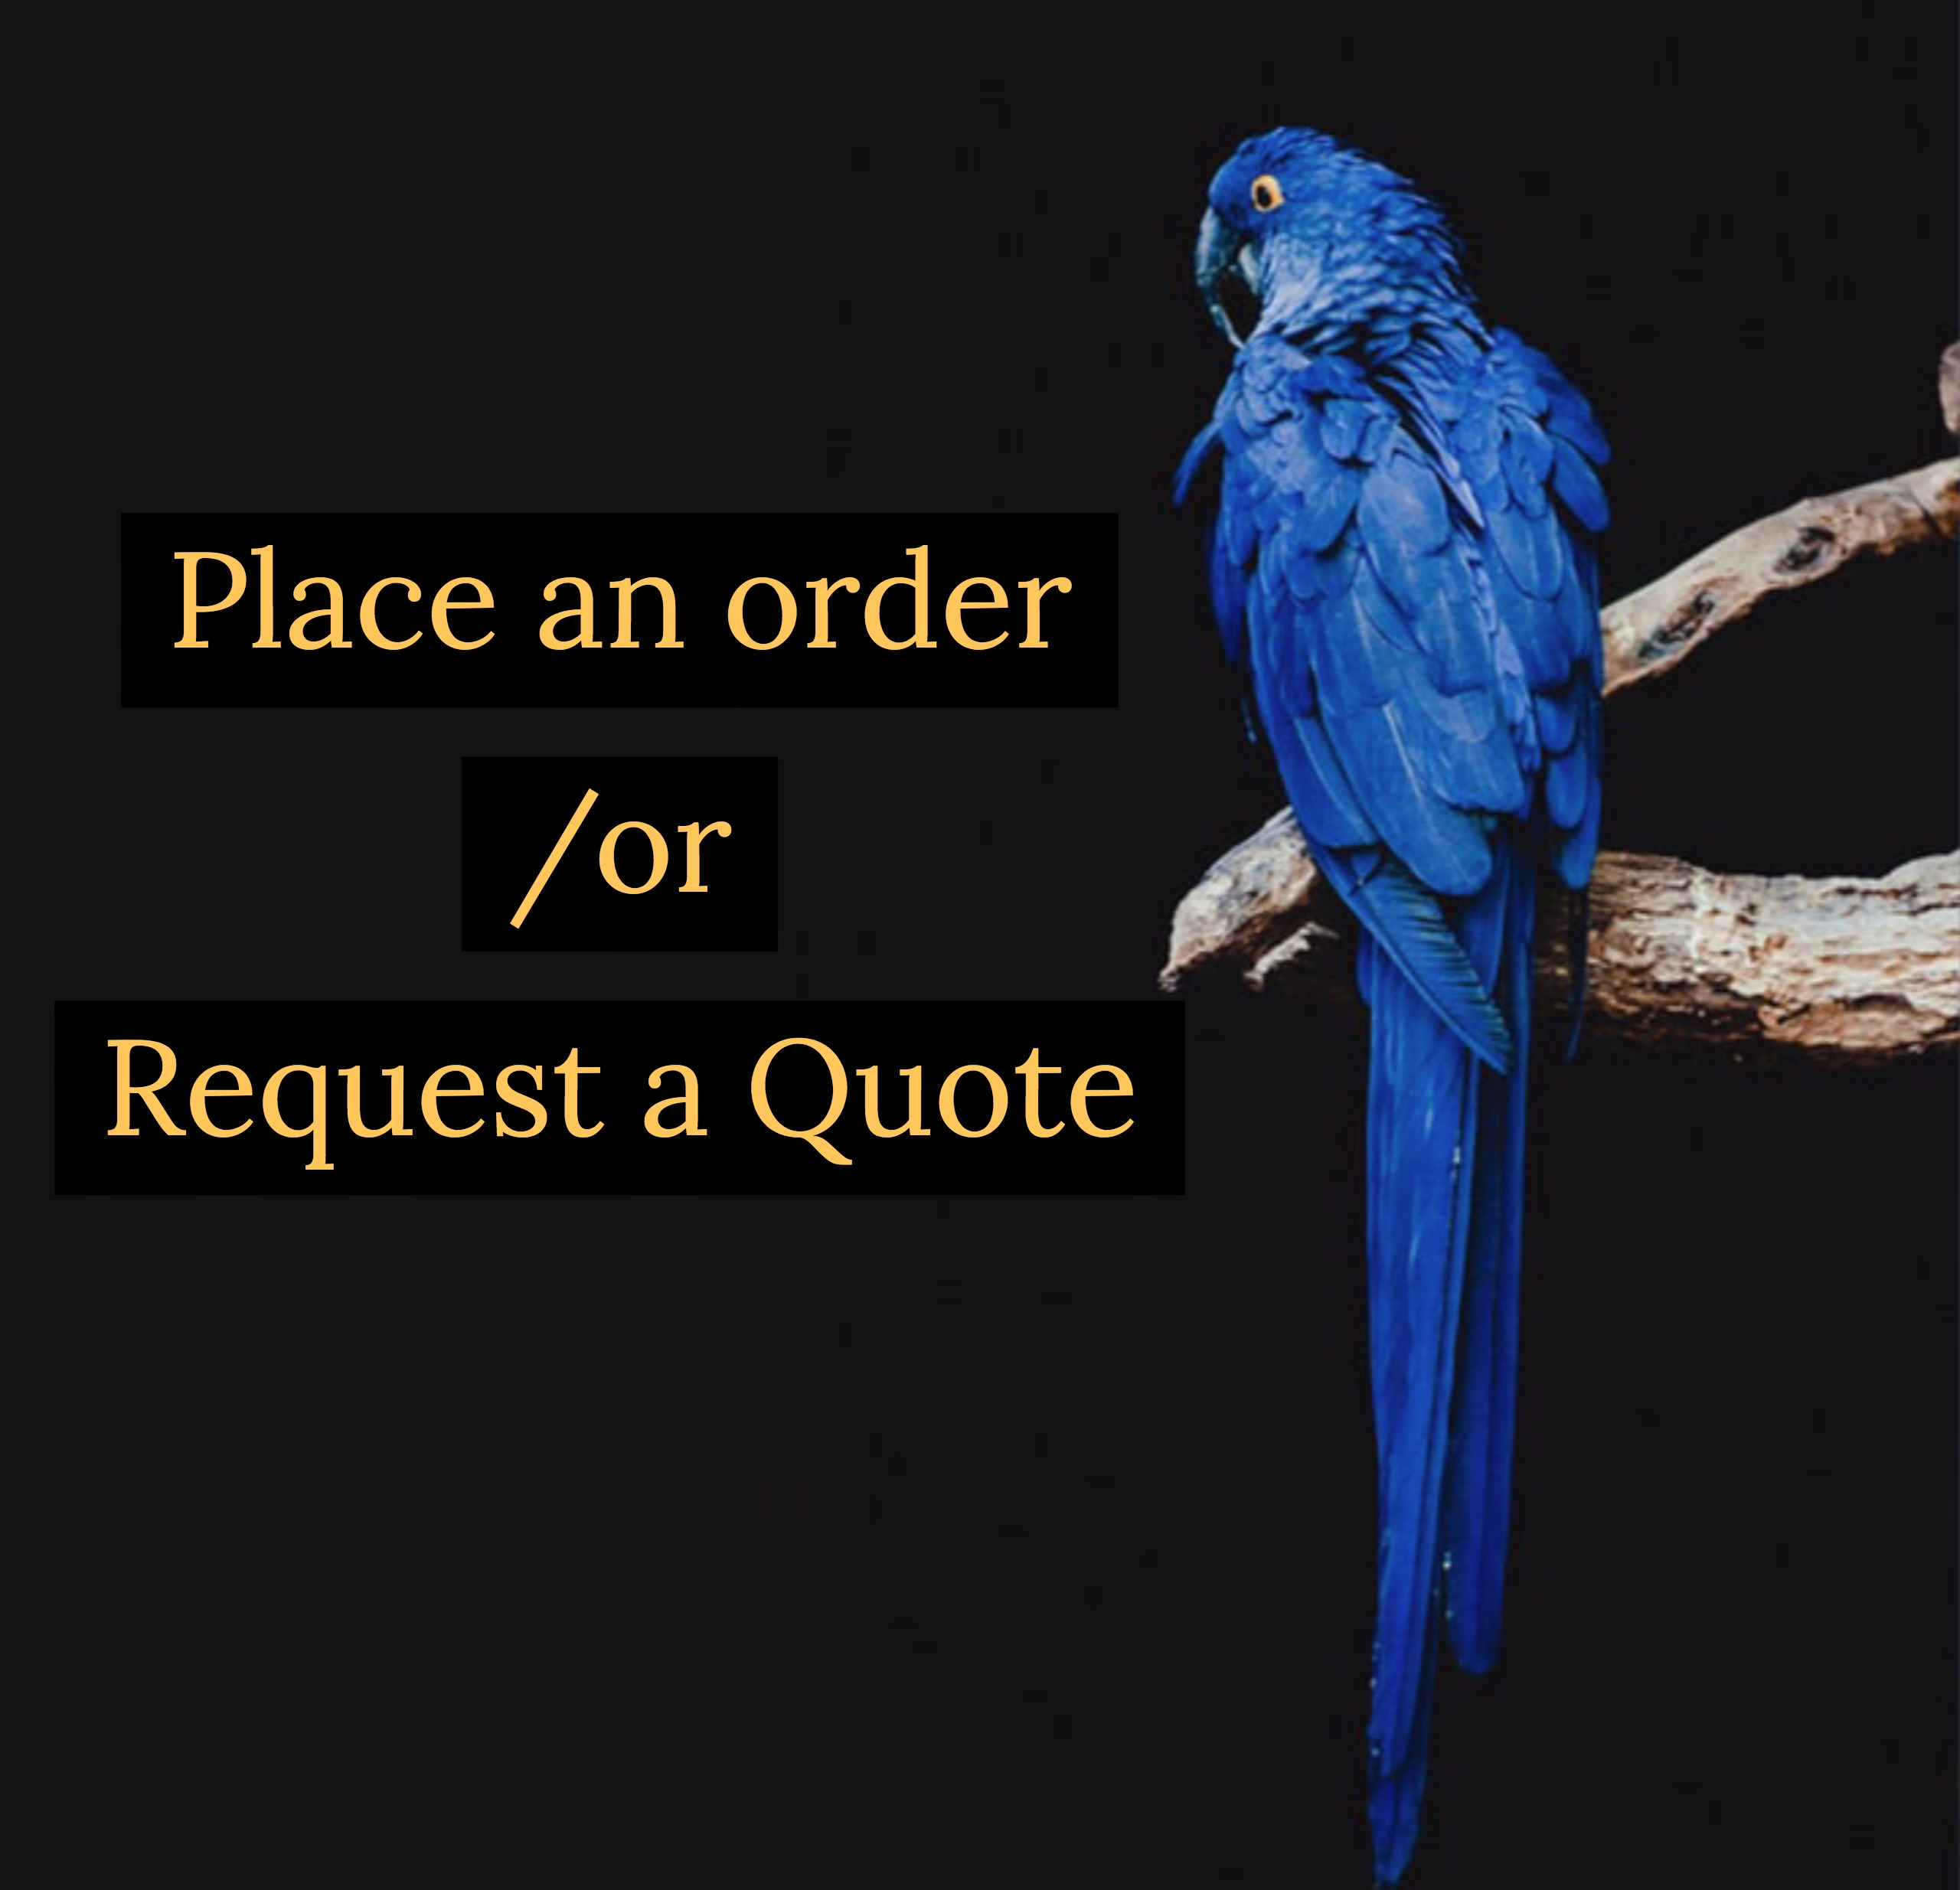 Order or Quote?